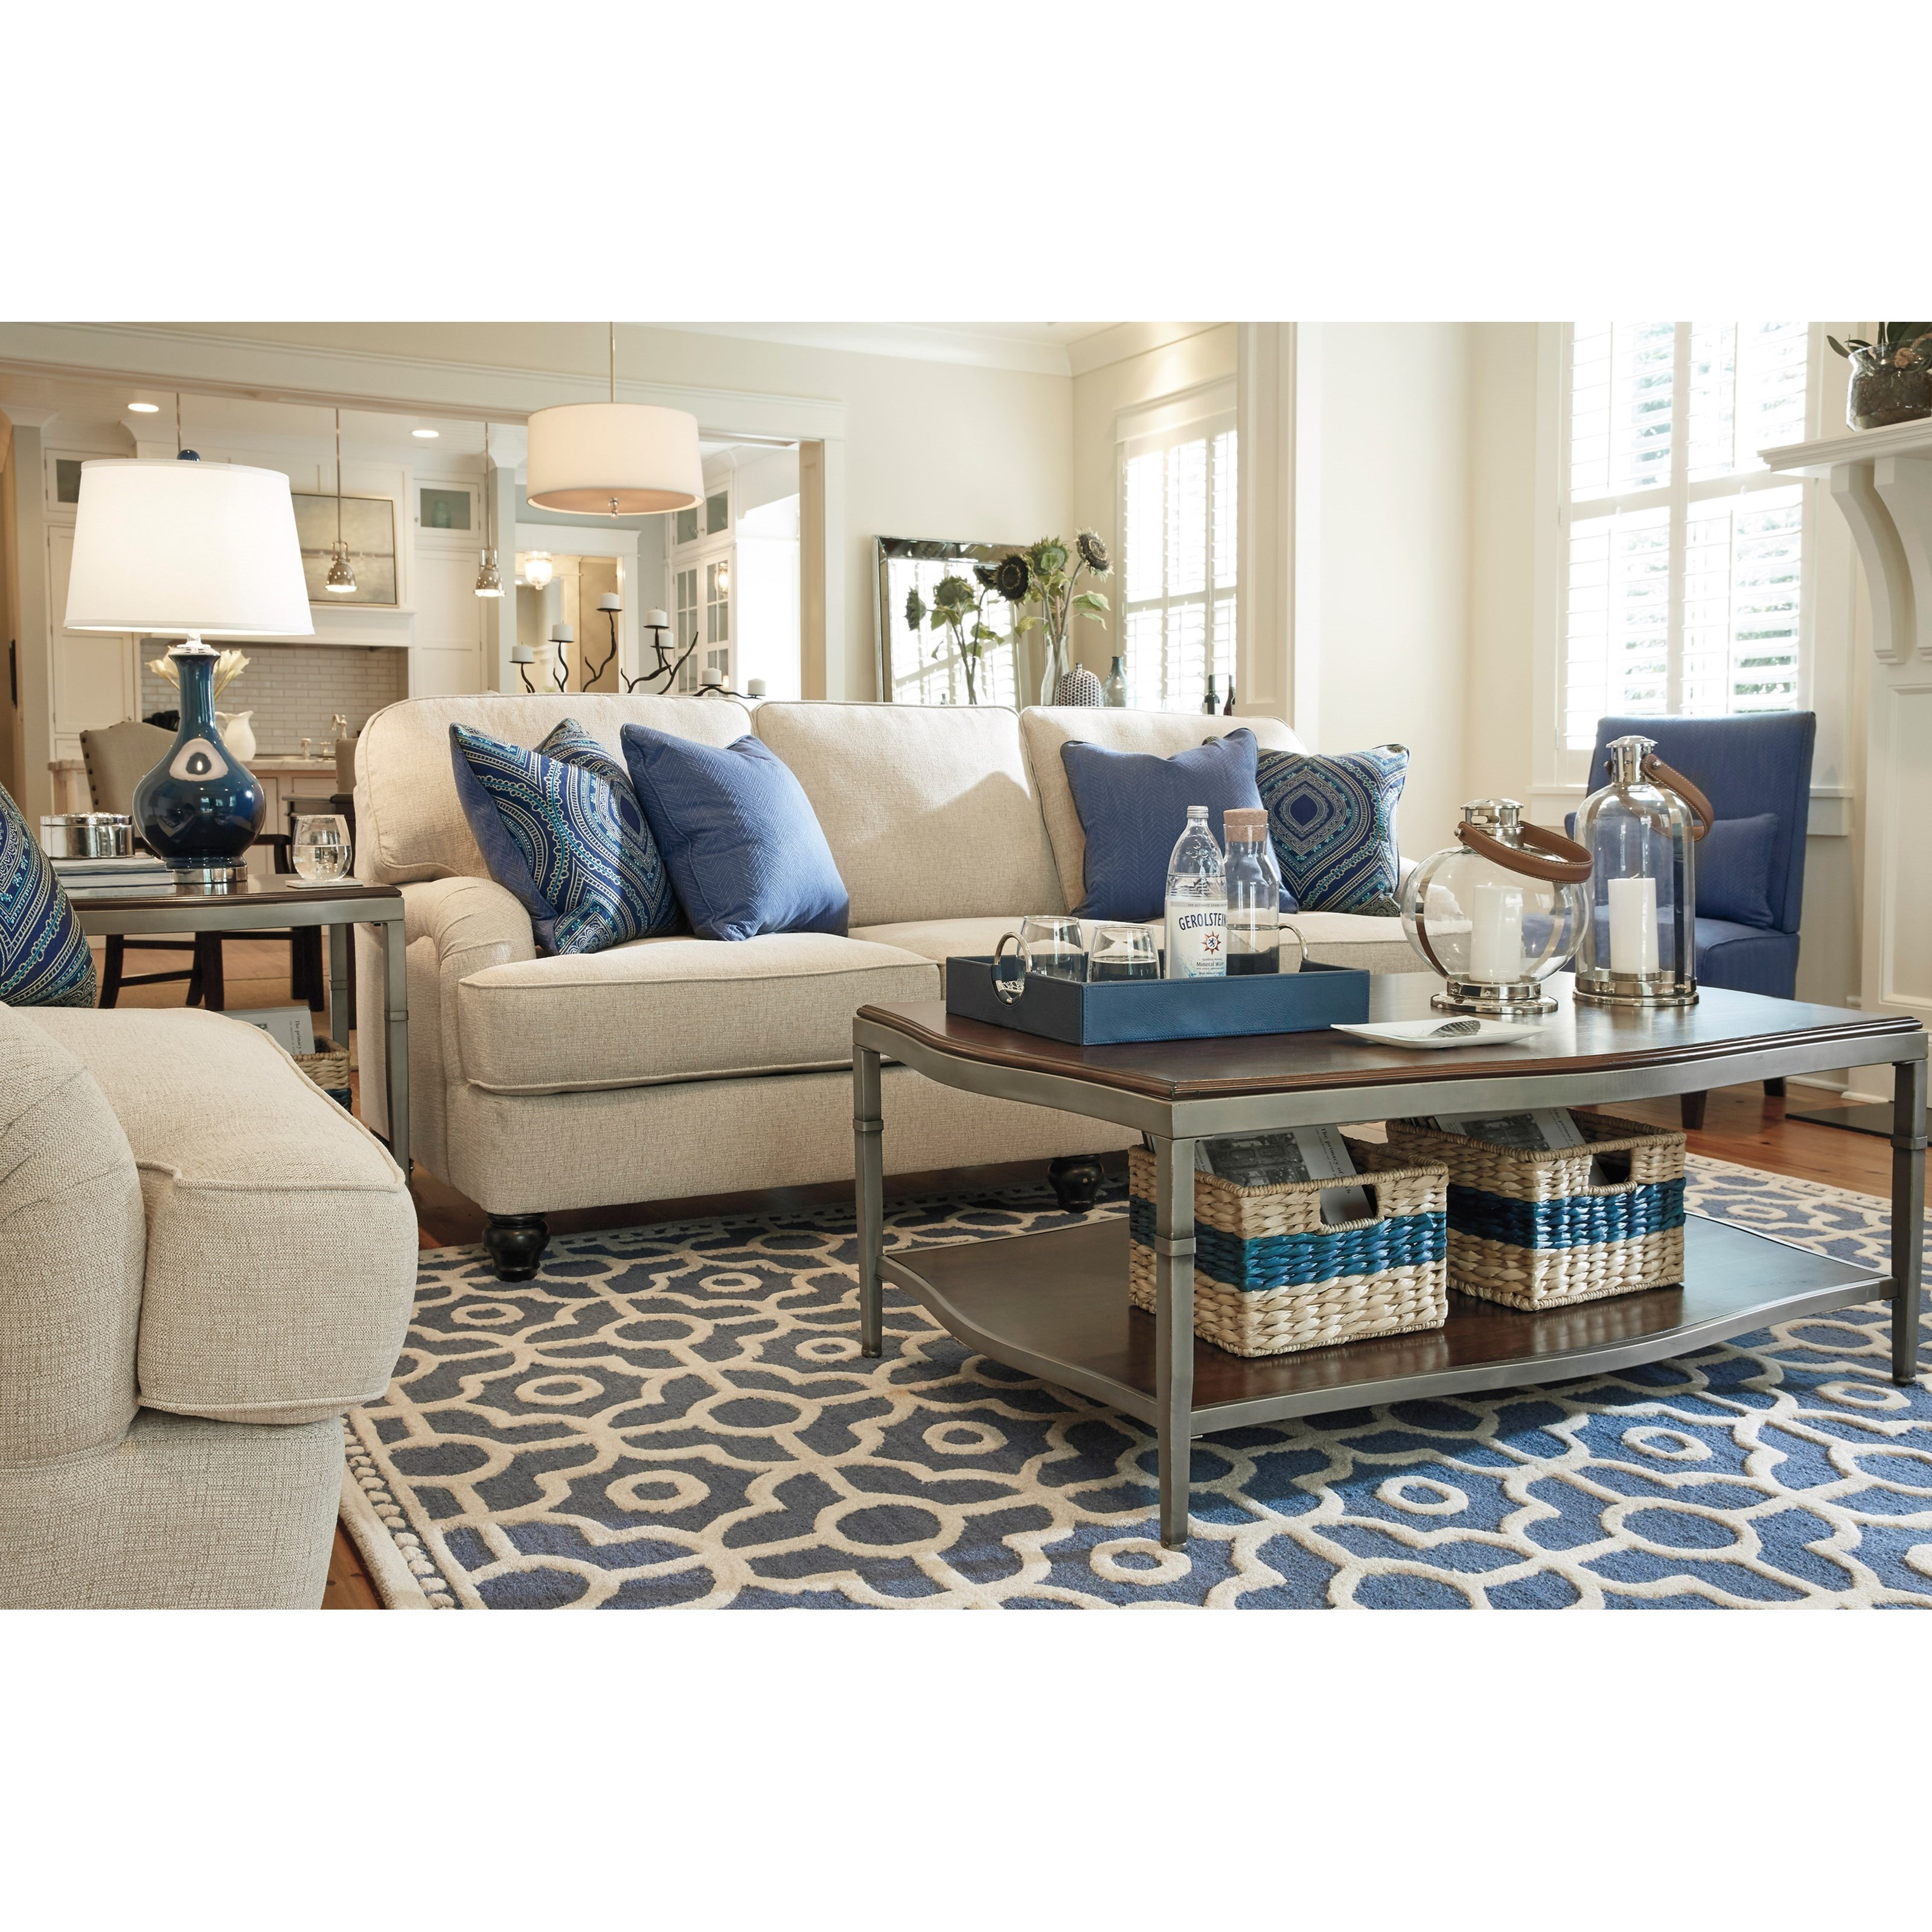 Millennium Harahan Stationary Living Room Group - Item Number: 35701 Living Room Group 3